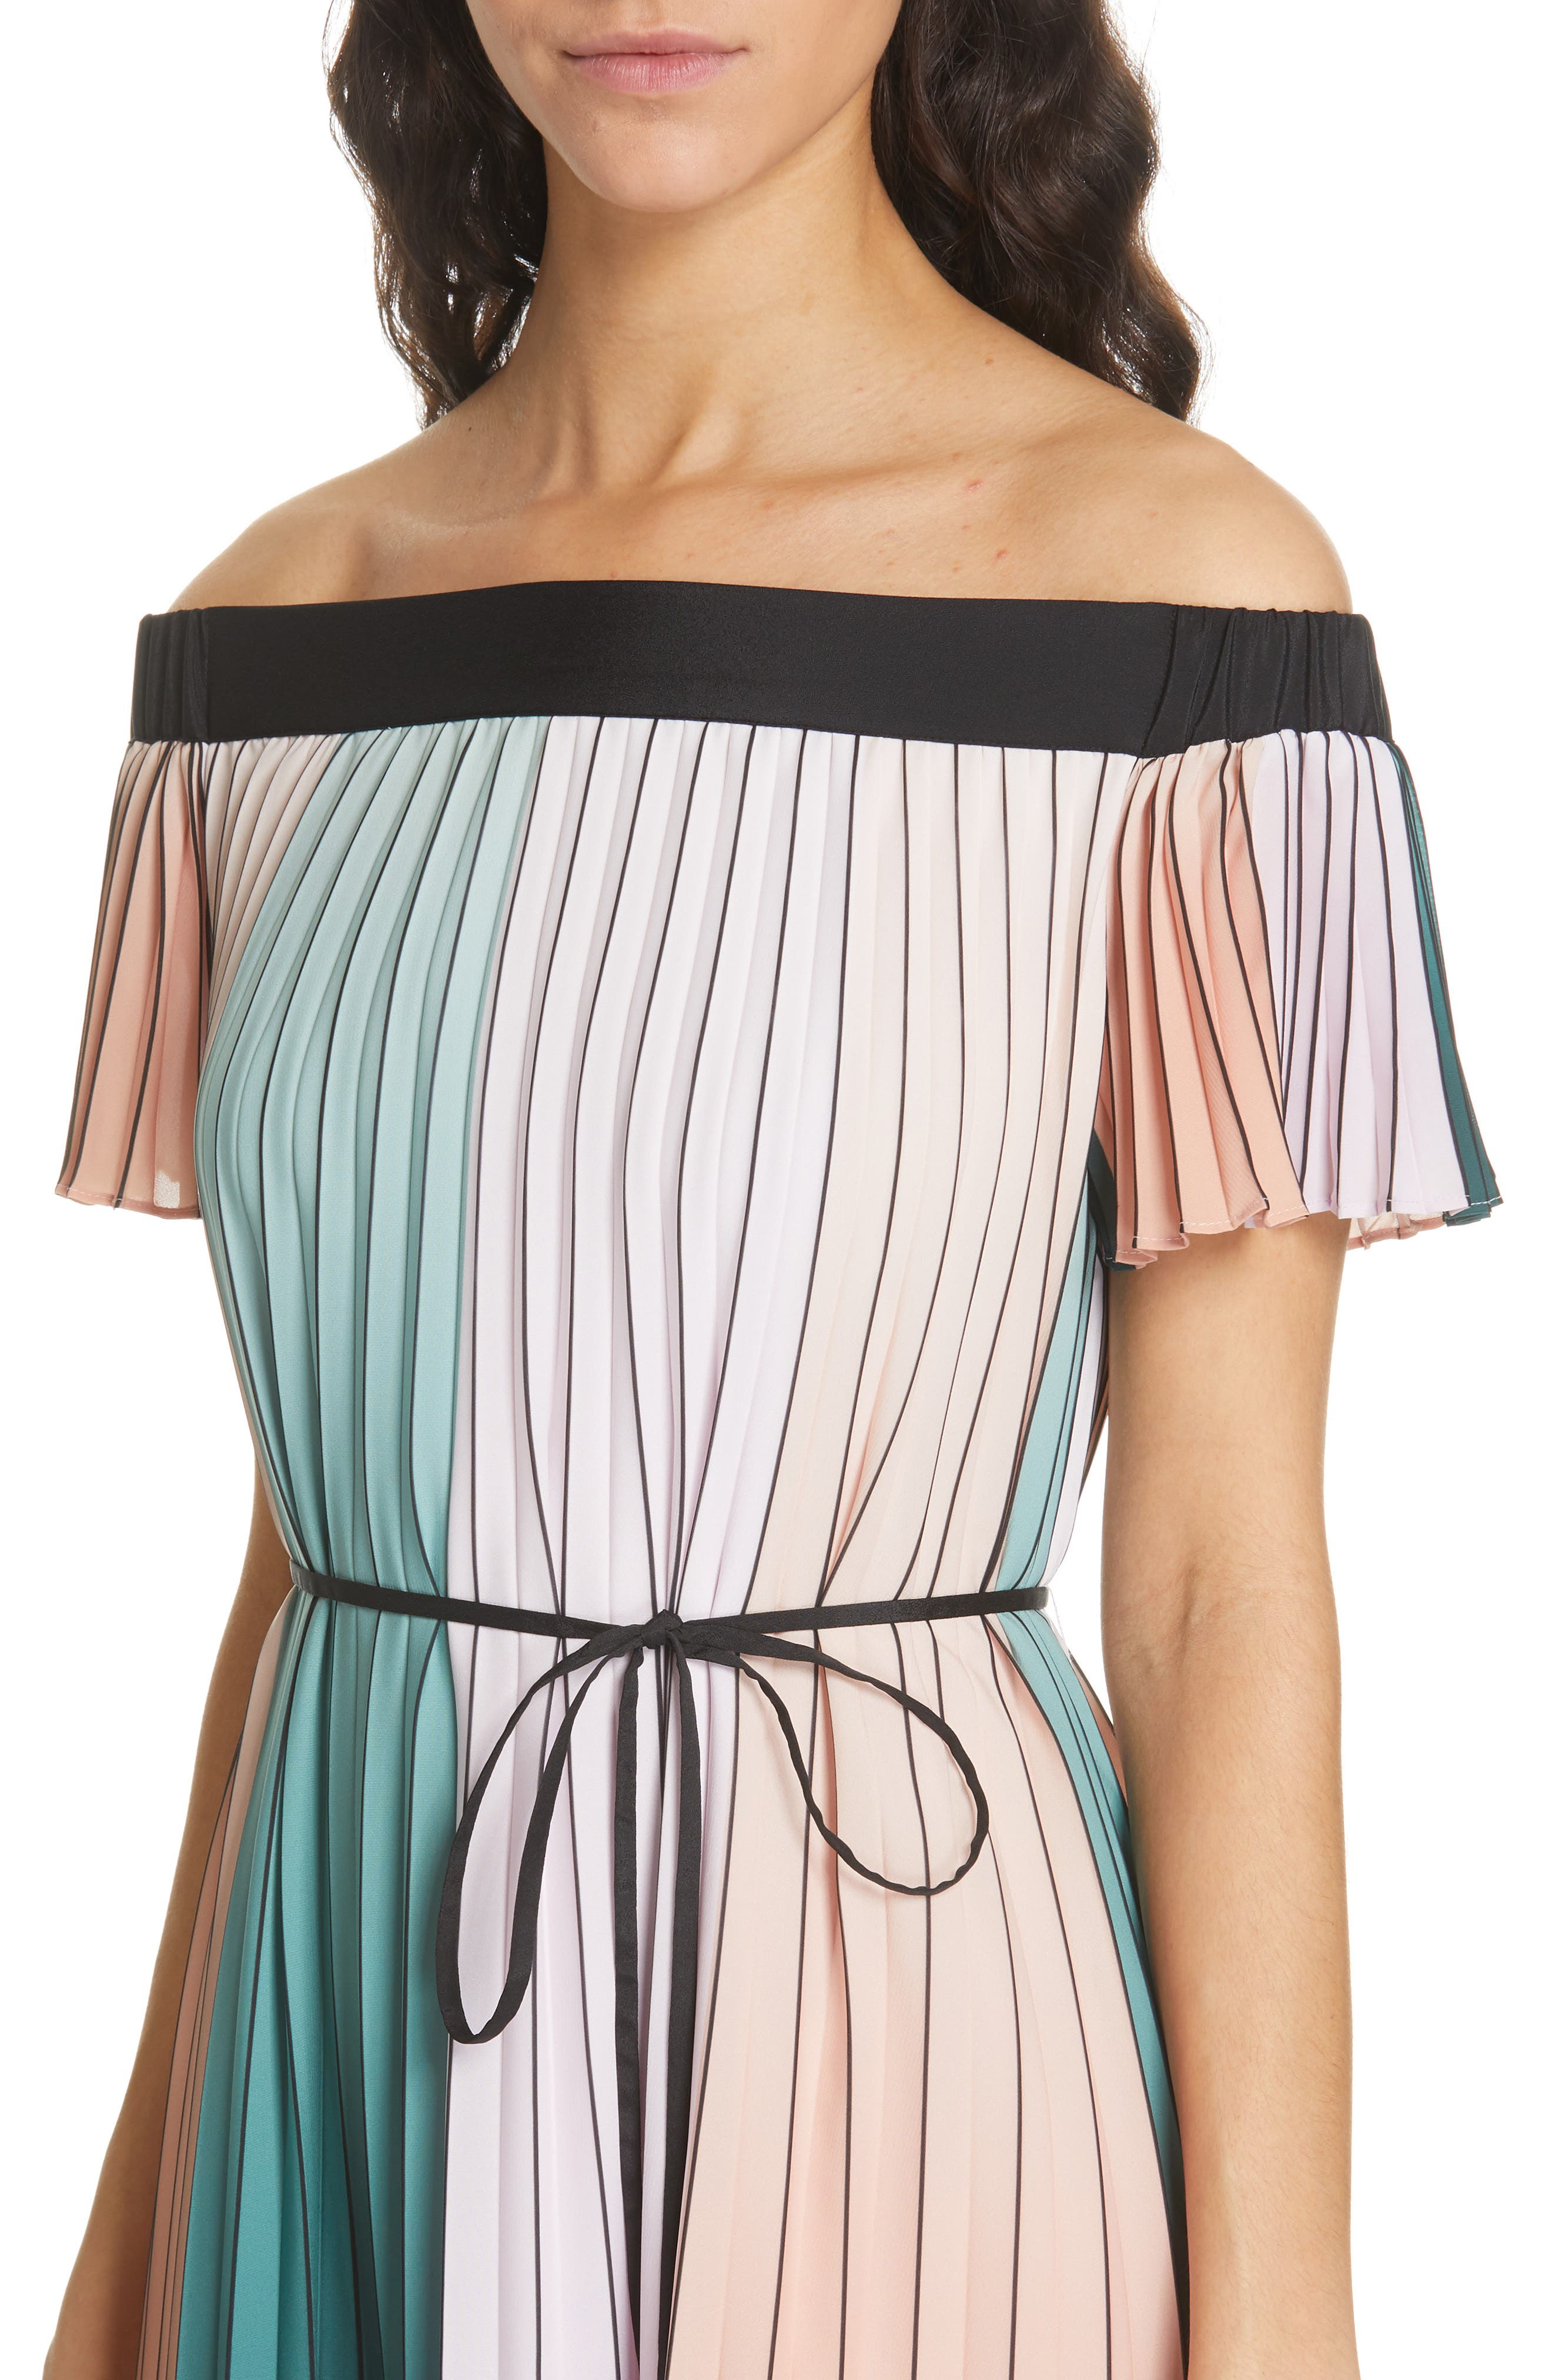 TED BAKER LONDON, Fernee Colorblock Pleated Dress, Alternate thumbnail 5, color, LILAC